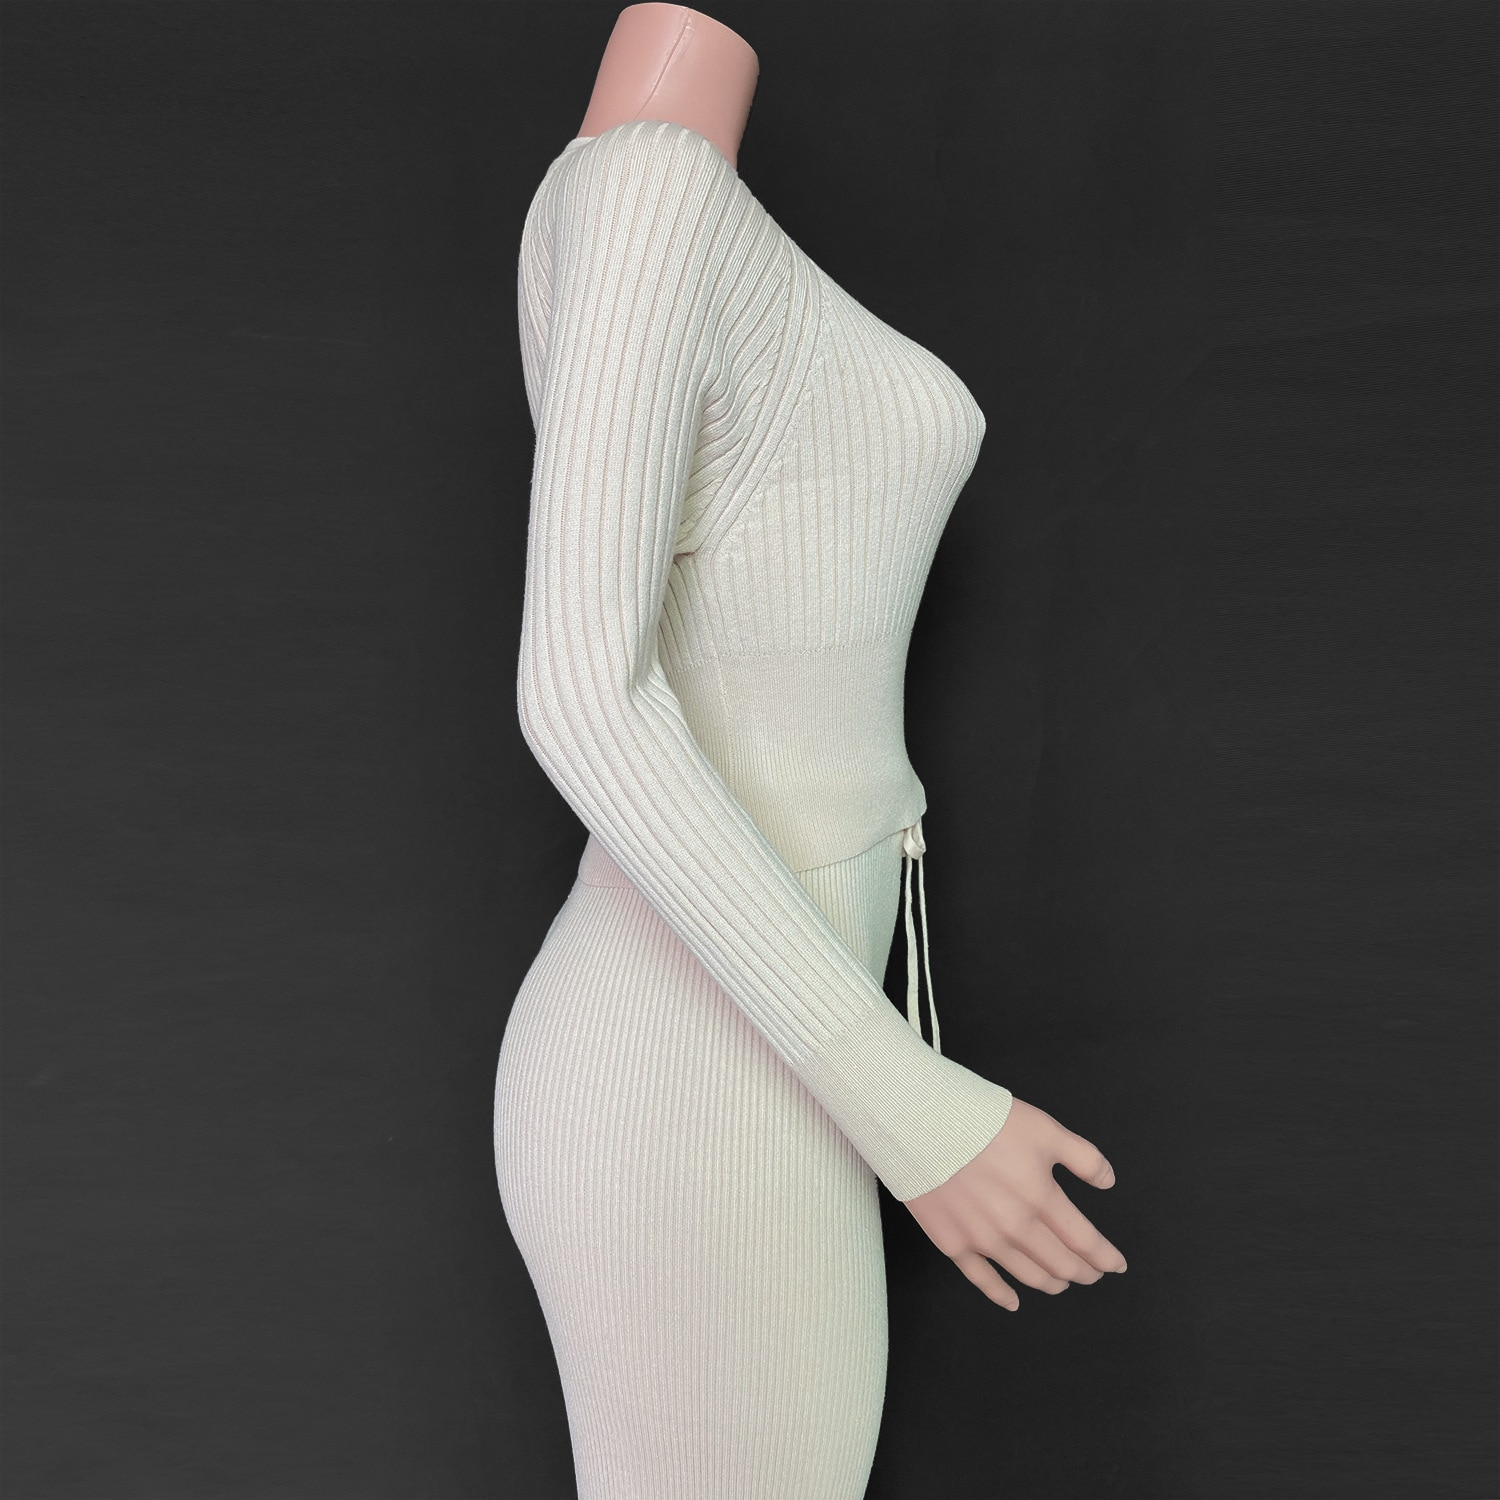 2021 Women's Knitted Sweater Solid Color Round Neck Long Sleeve Outfits Y2K Casual Striped Suit Warm Two Piece Sets Tracksuit